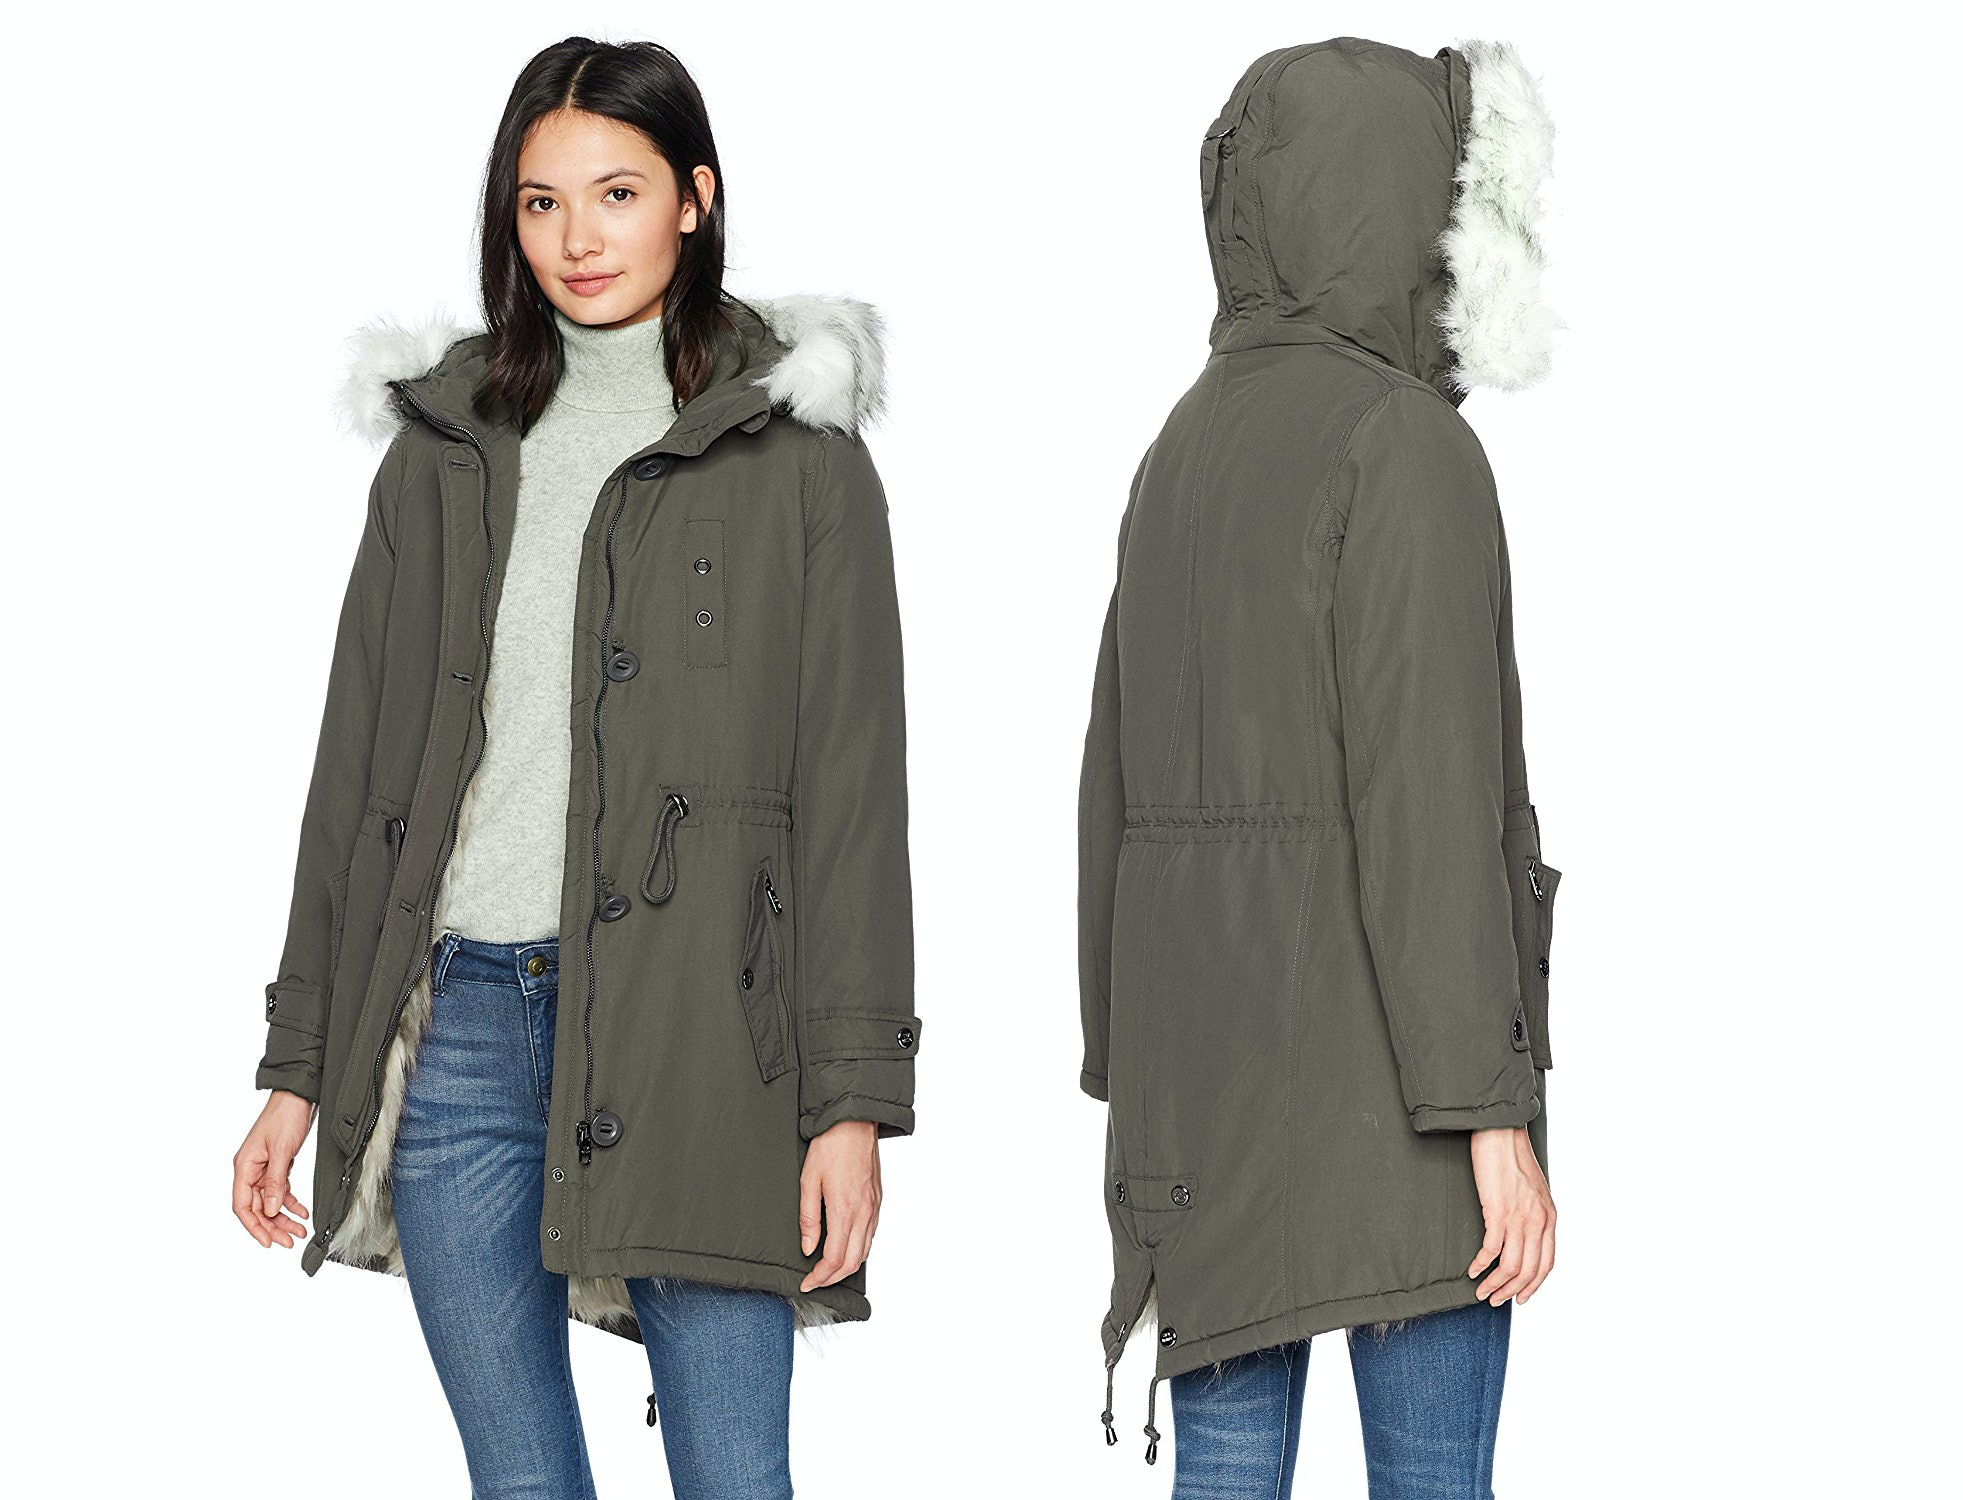 MORE: 10 Stylish Winter Coats Under 100 MORE: 10 Stylish Winter Coats Under 100 new pictures